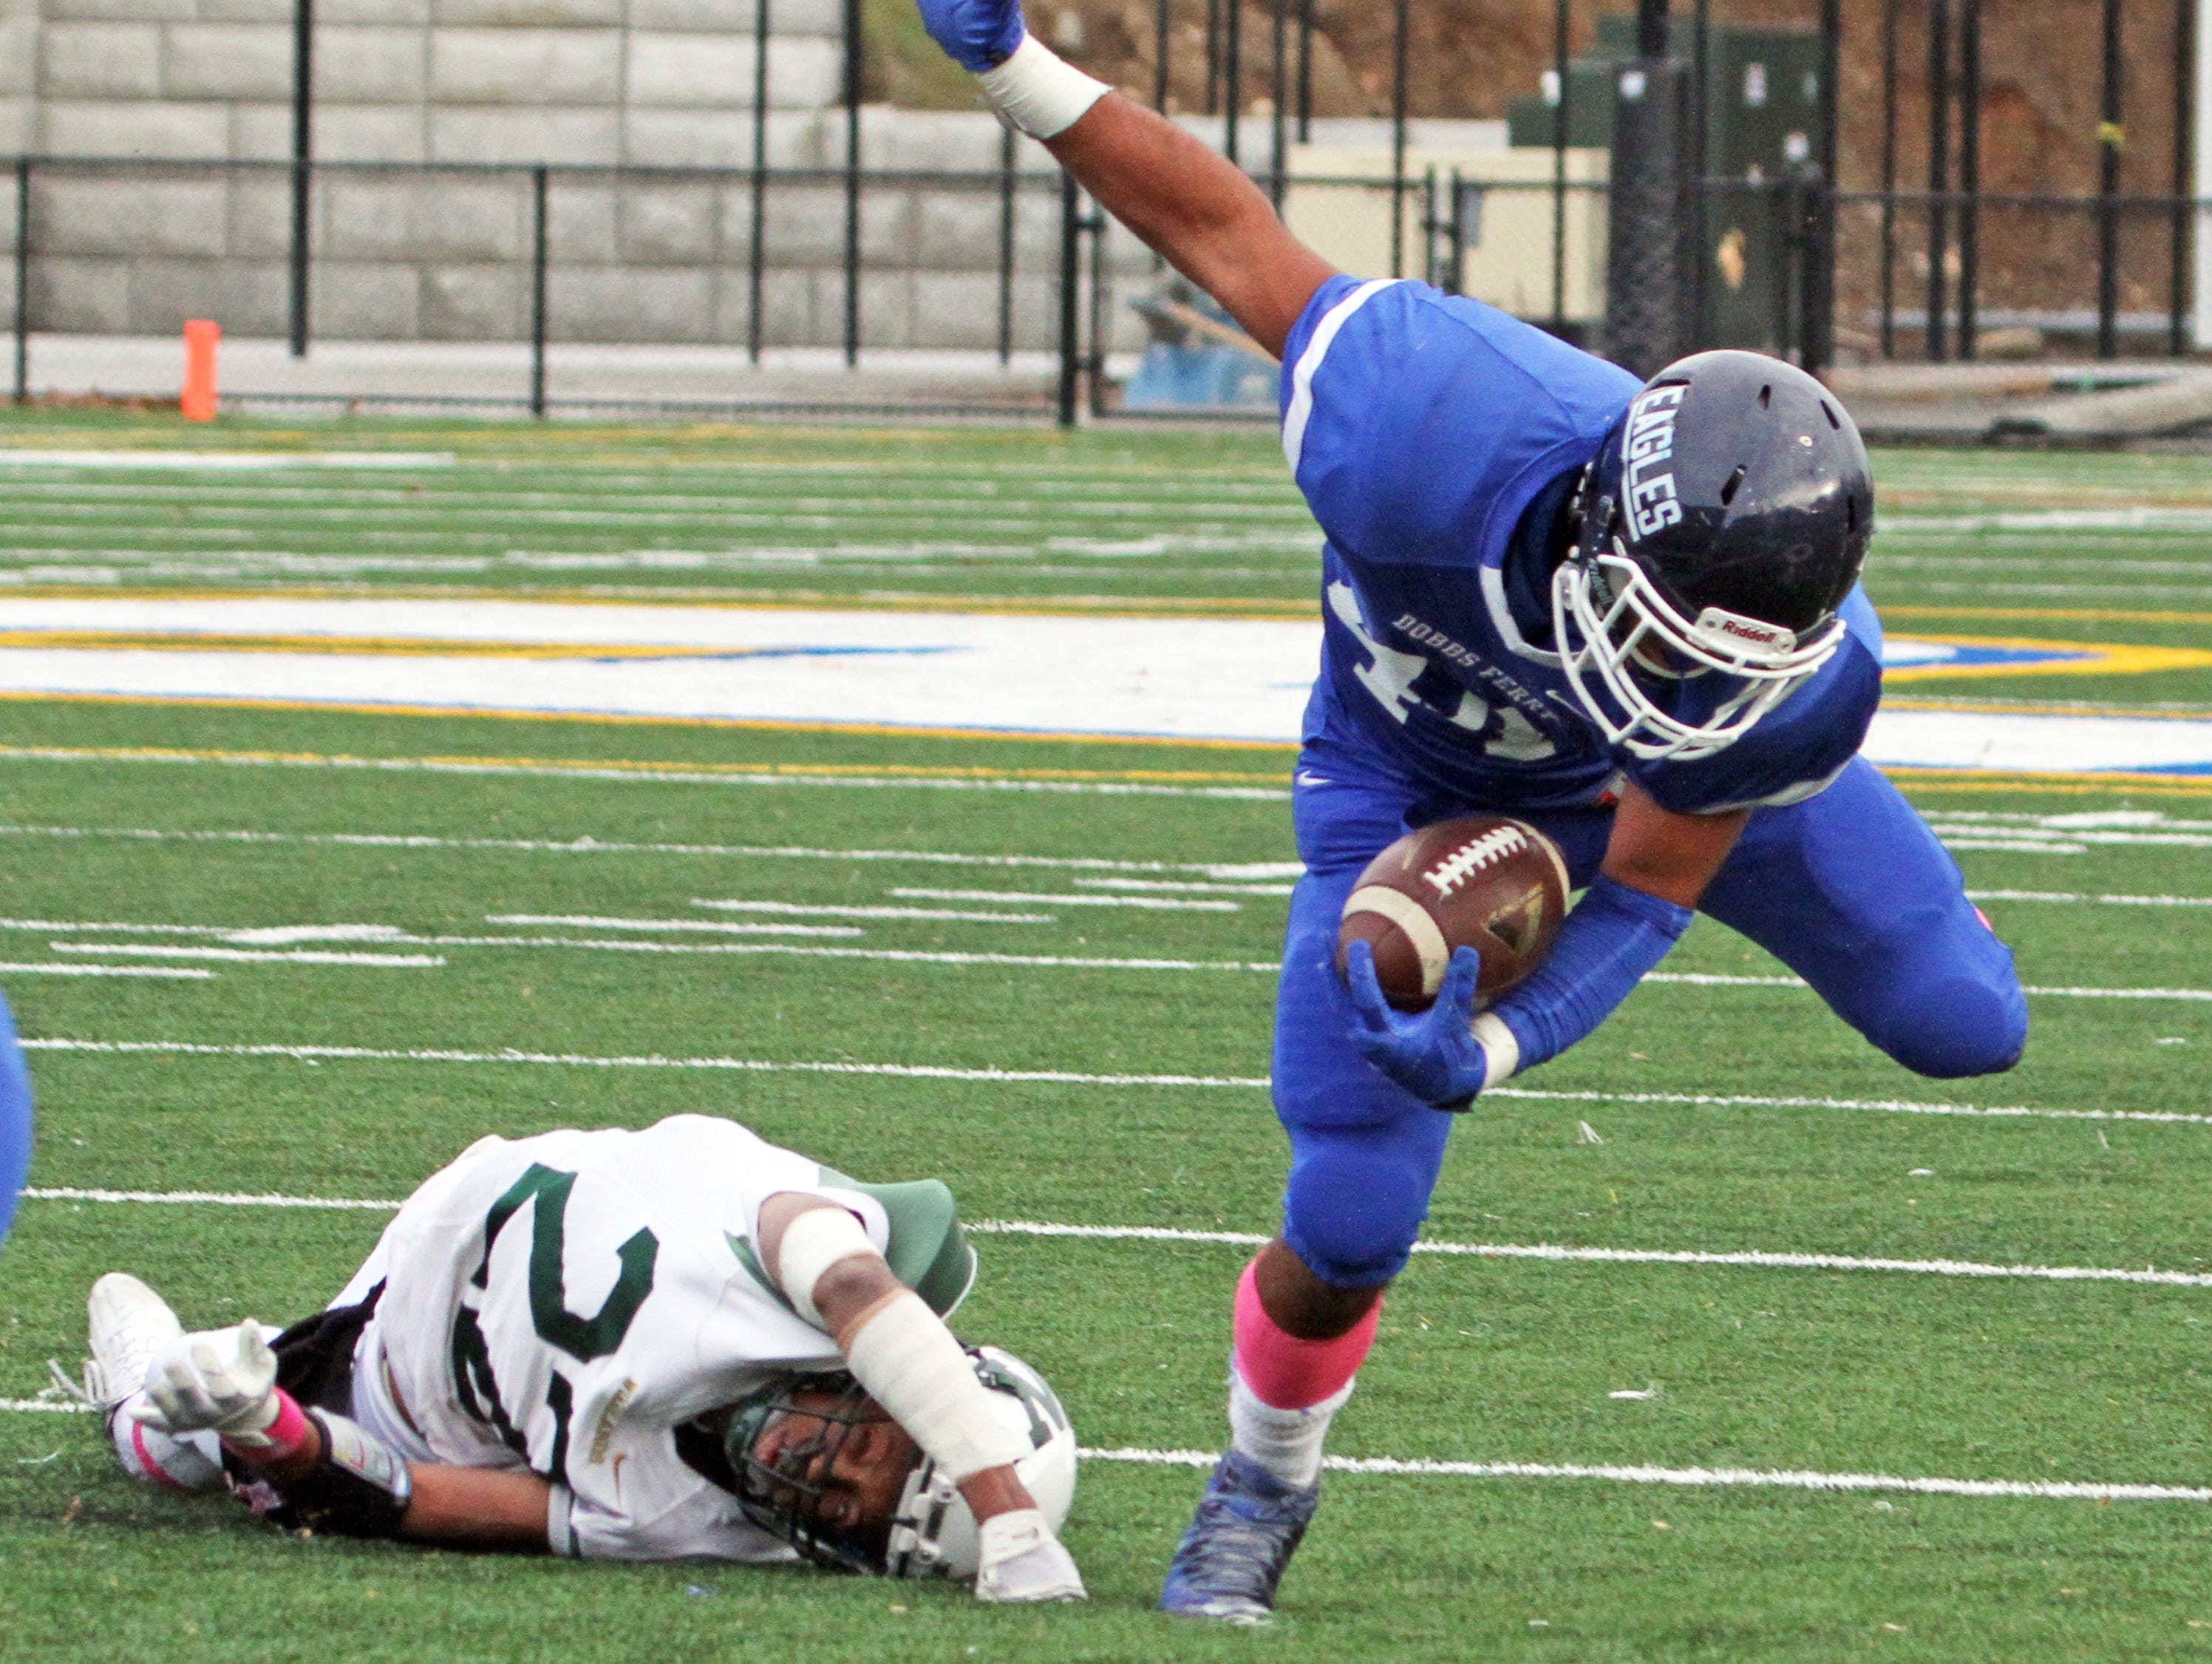 Jibral Kapadia of Dobbs Ferry evades Timothy Leak II of Woodlands for Dobbs Ferry's second touchdown during the Class C championship game at Pace University Oct. 31, 2015. Dobbs Ferry defeated Woodlands 35-0.